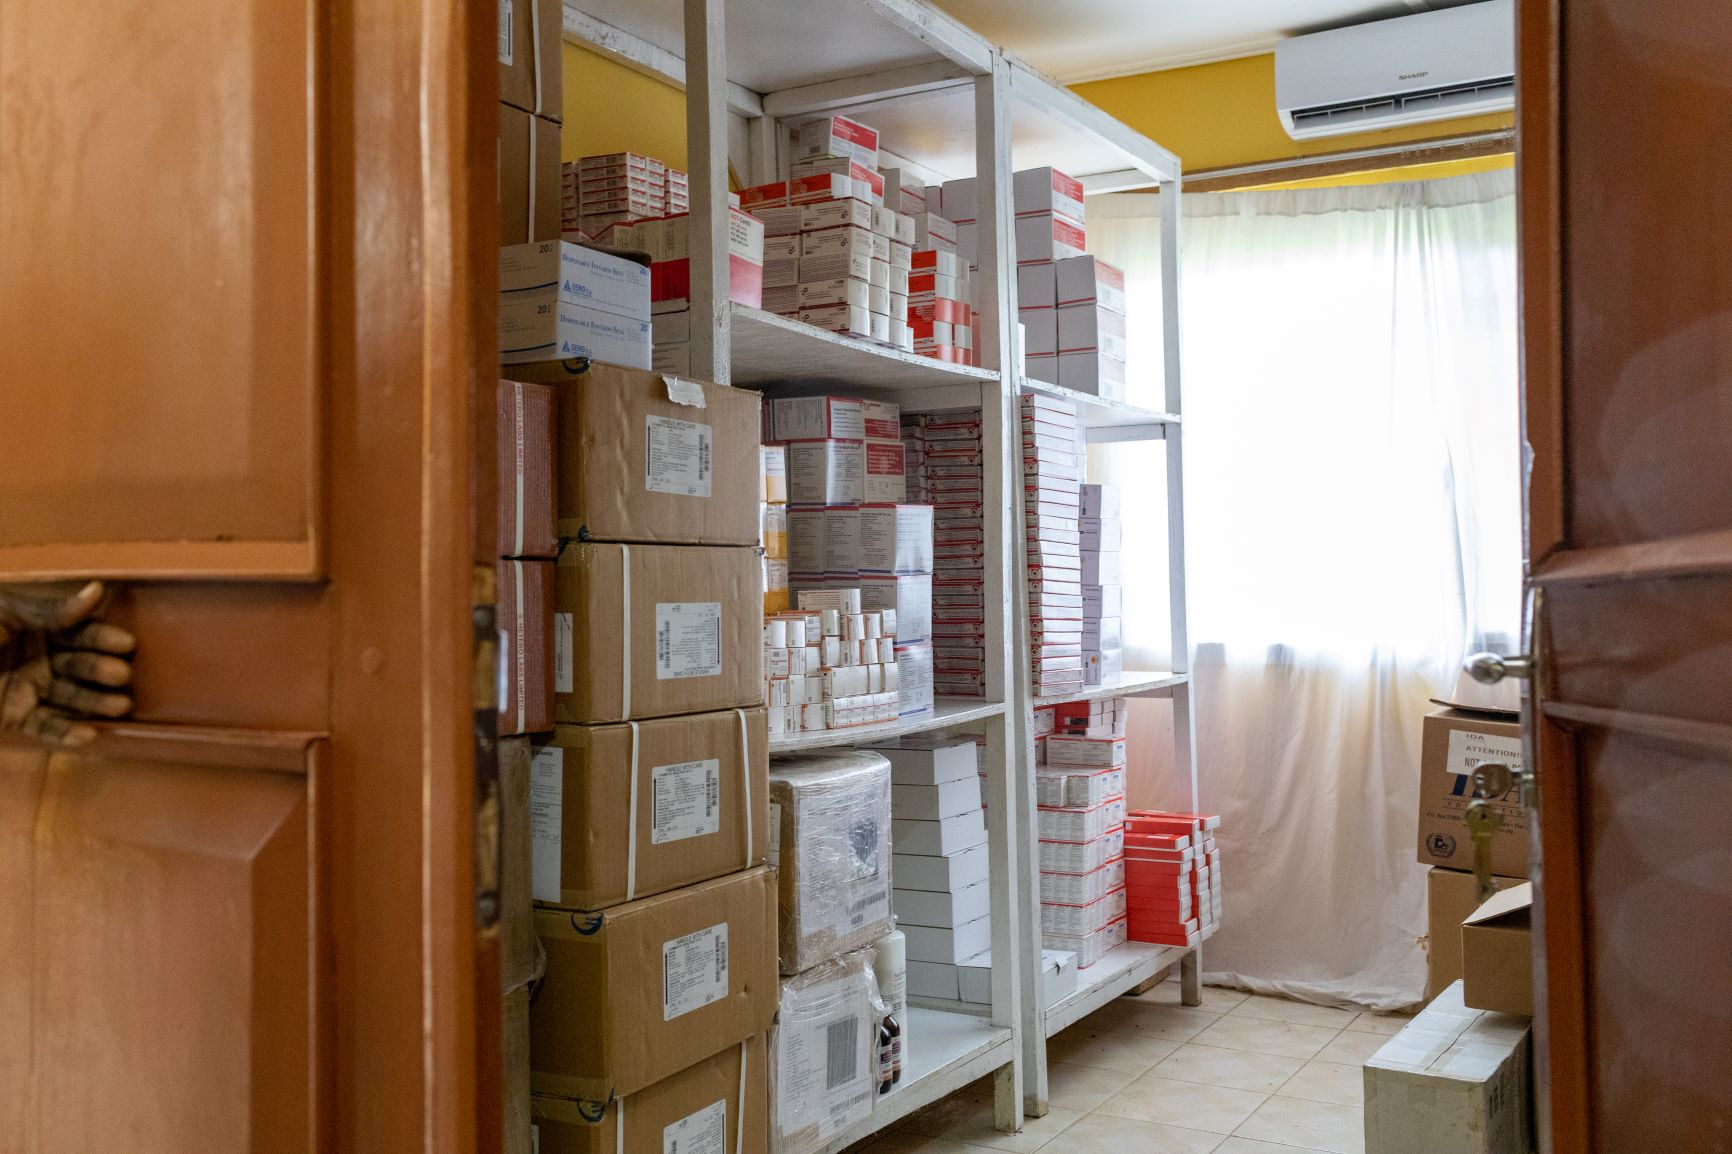 Lakka Hospital's pharmacy, stocked with help from PIH